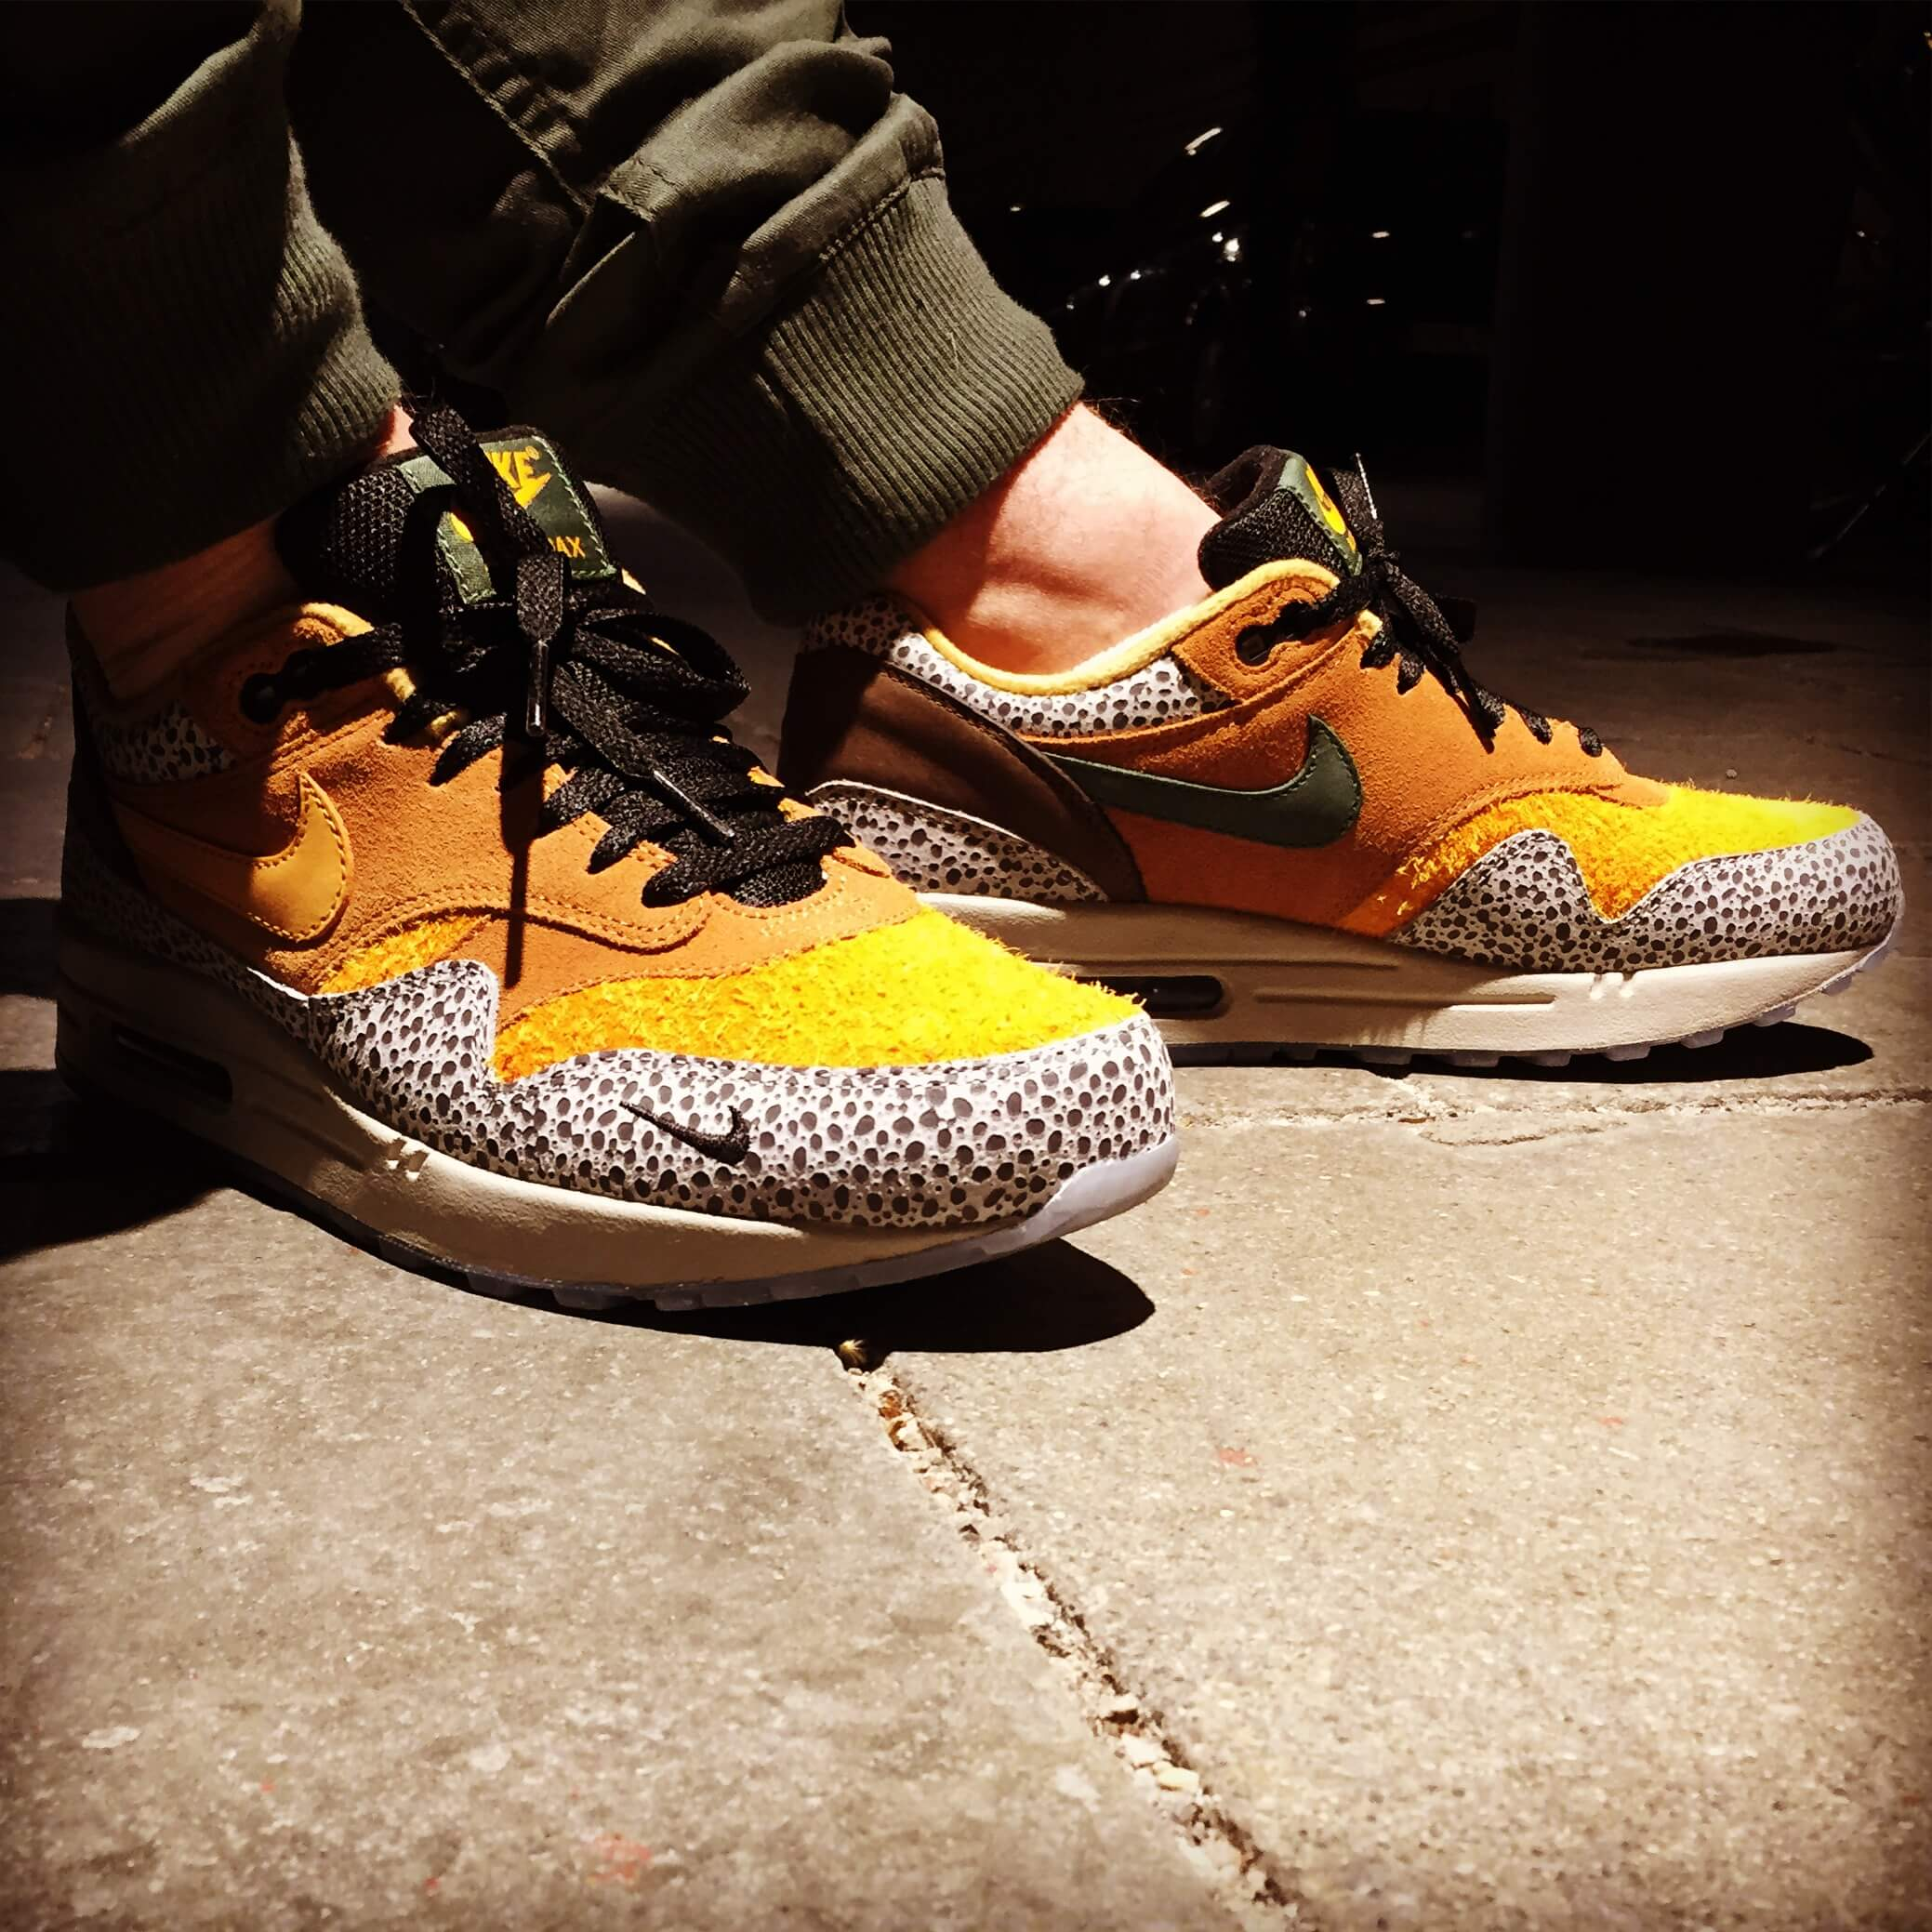 Nike-Air-Max-1-Safari-x-Atmos-Side-View-Alternate-Benstah-Onfeet